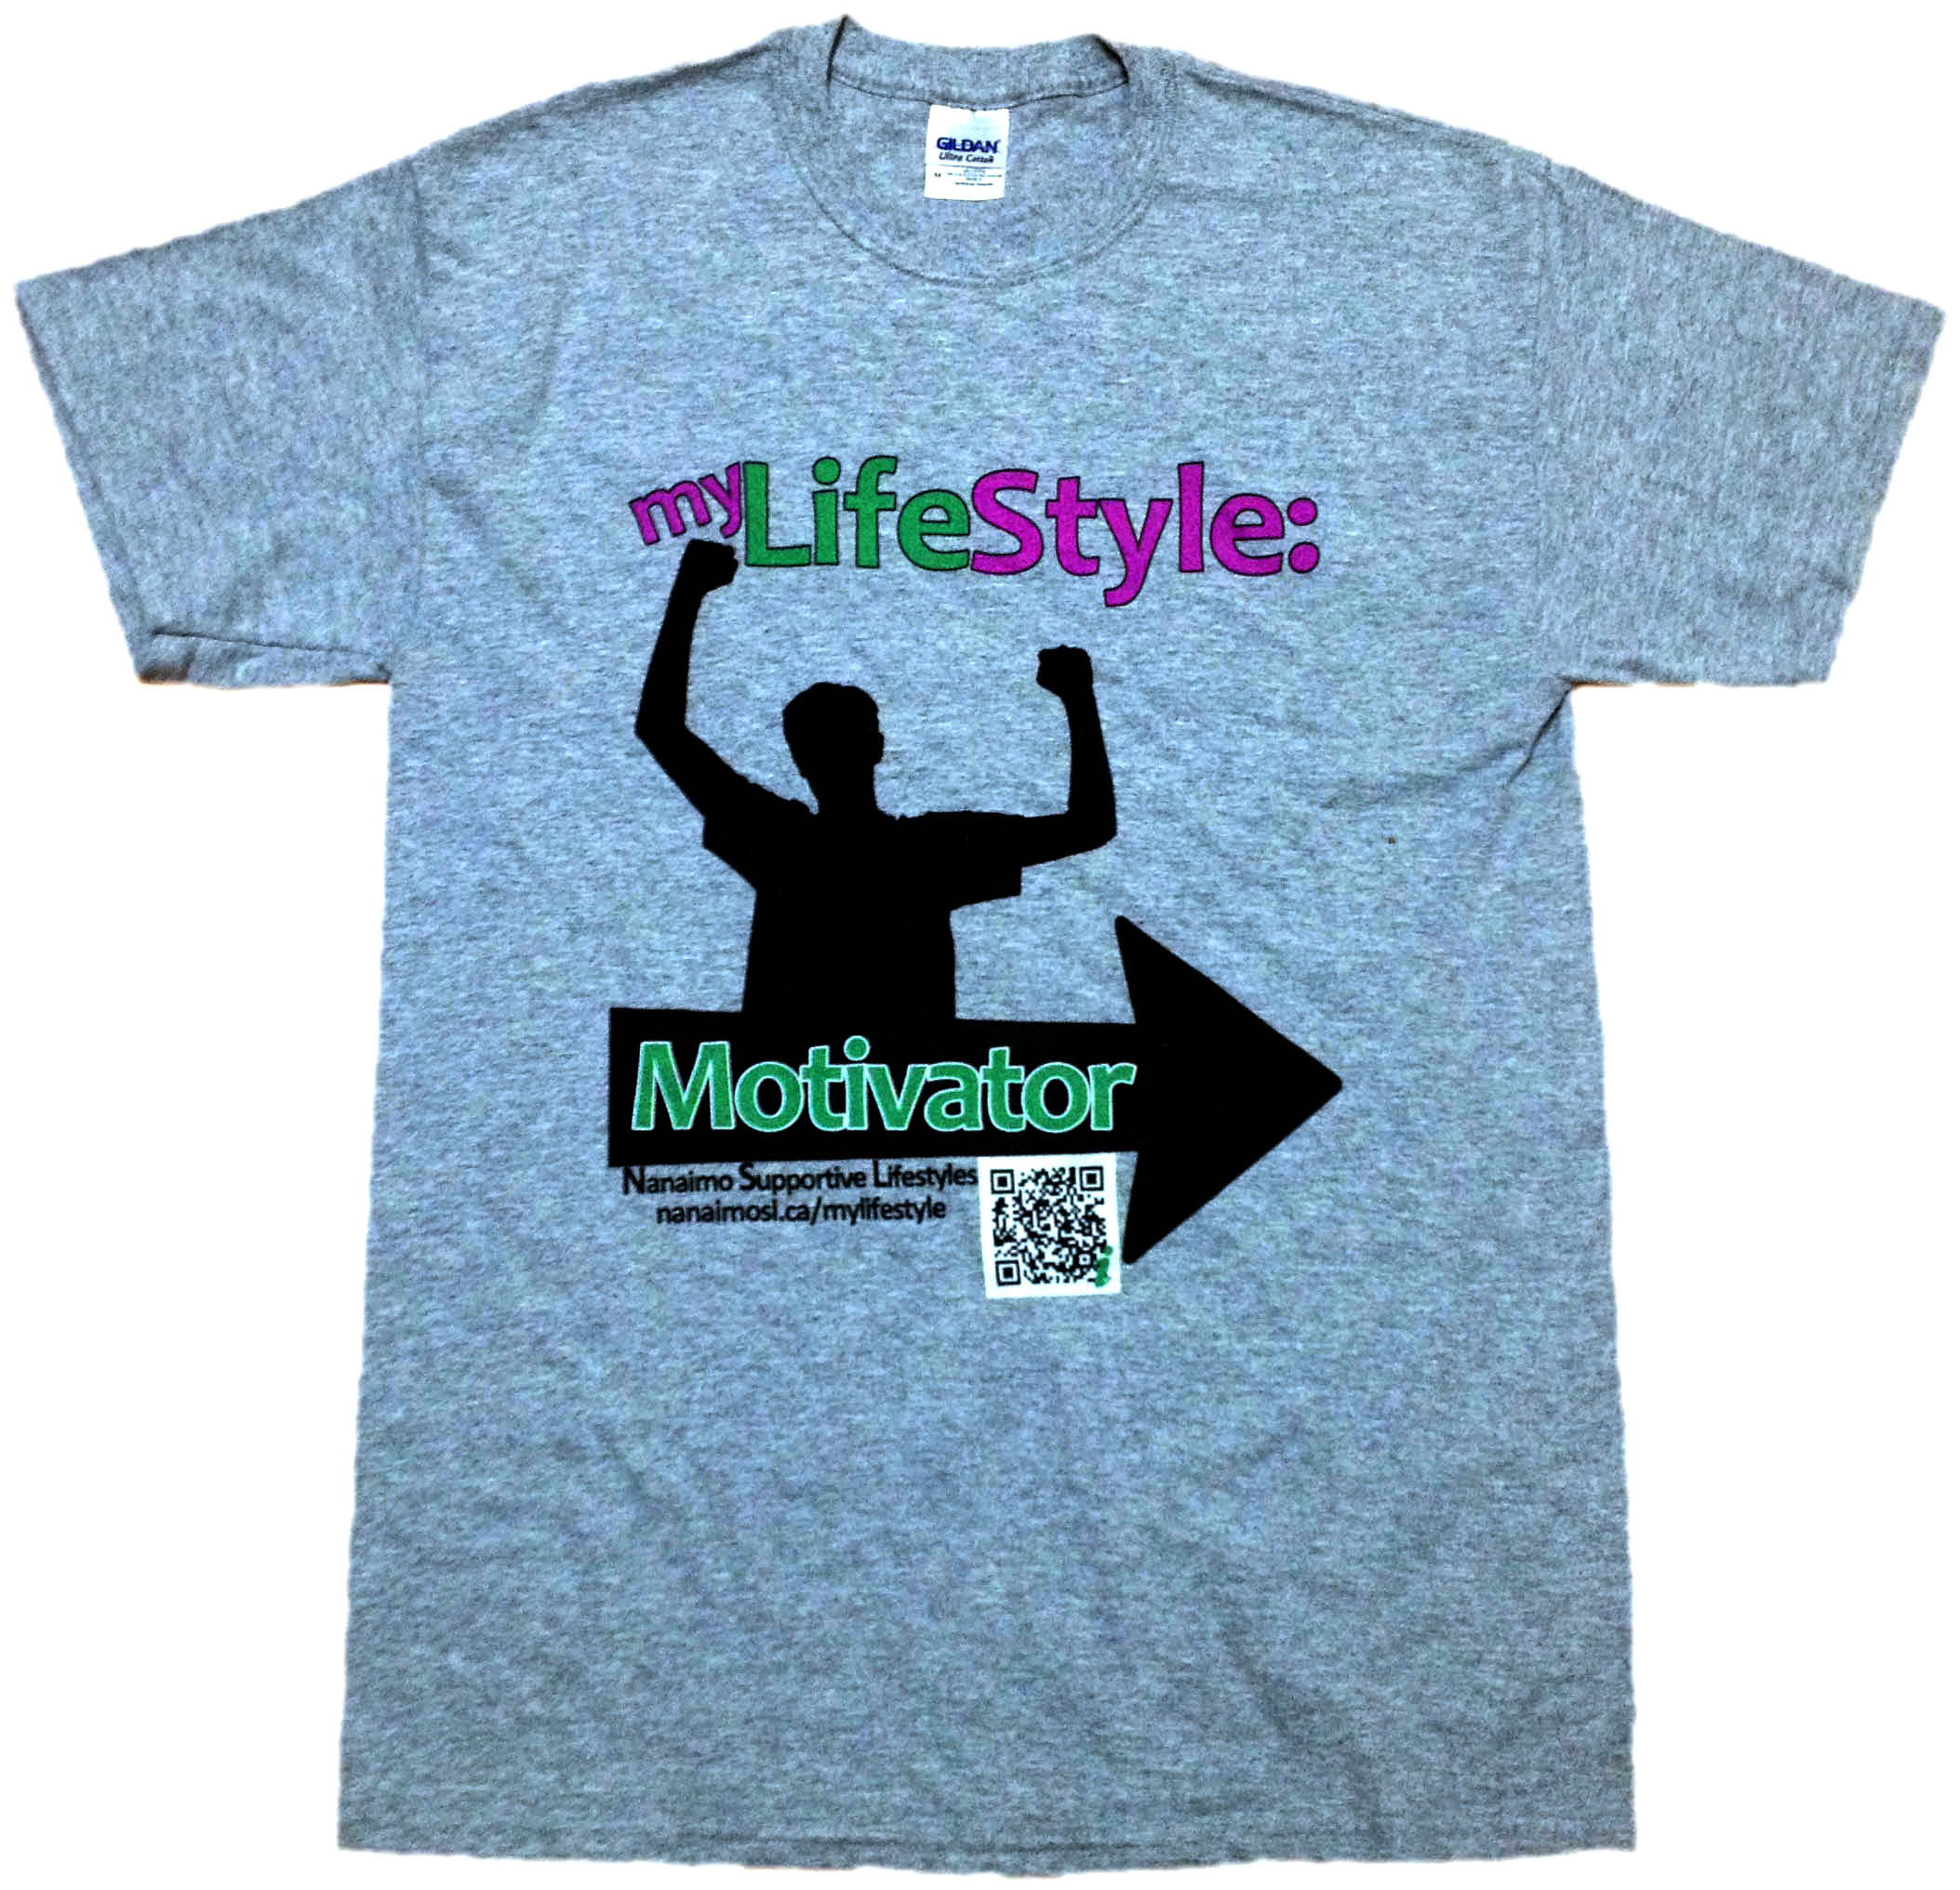 myLifeStyle: A tshirt for any client that sets a goal and achieves it. Customized with their own tag line to help them be proud of their achievement.